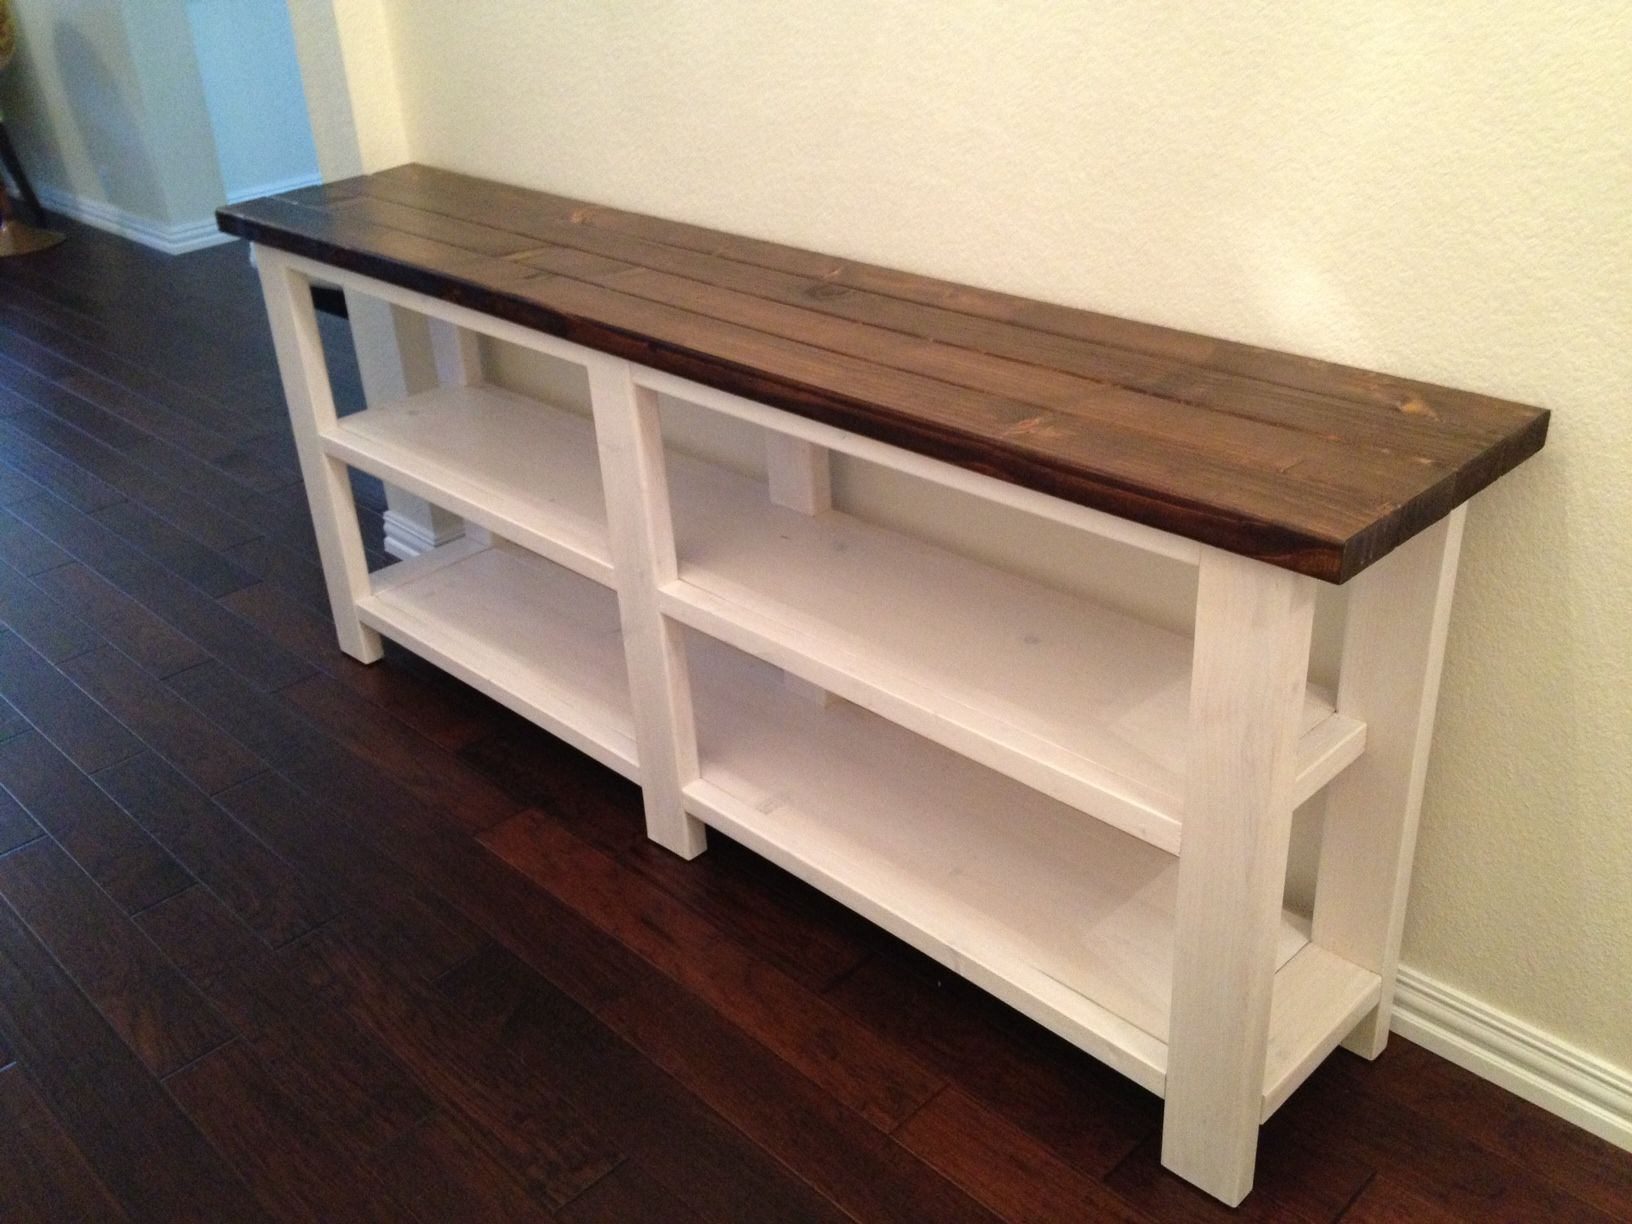 Best 25 Rustic console tables ideas on Pinterest